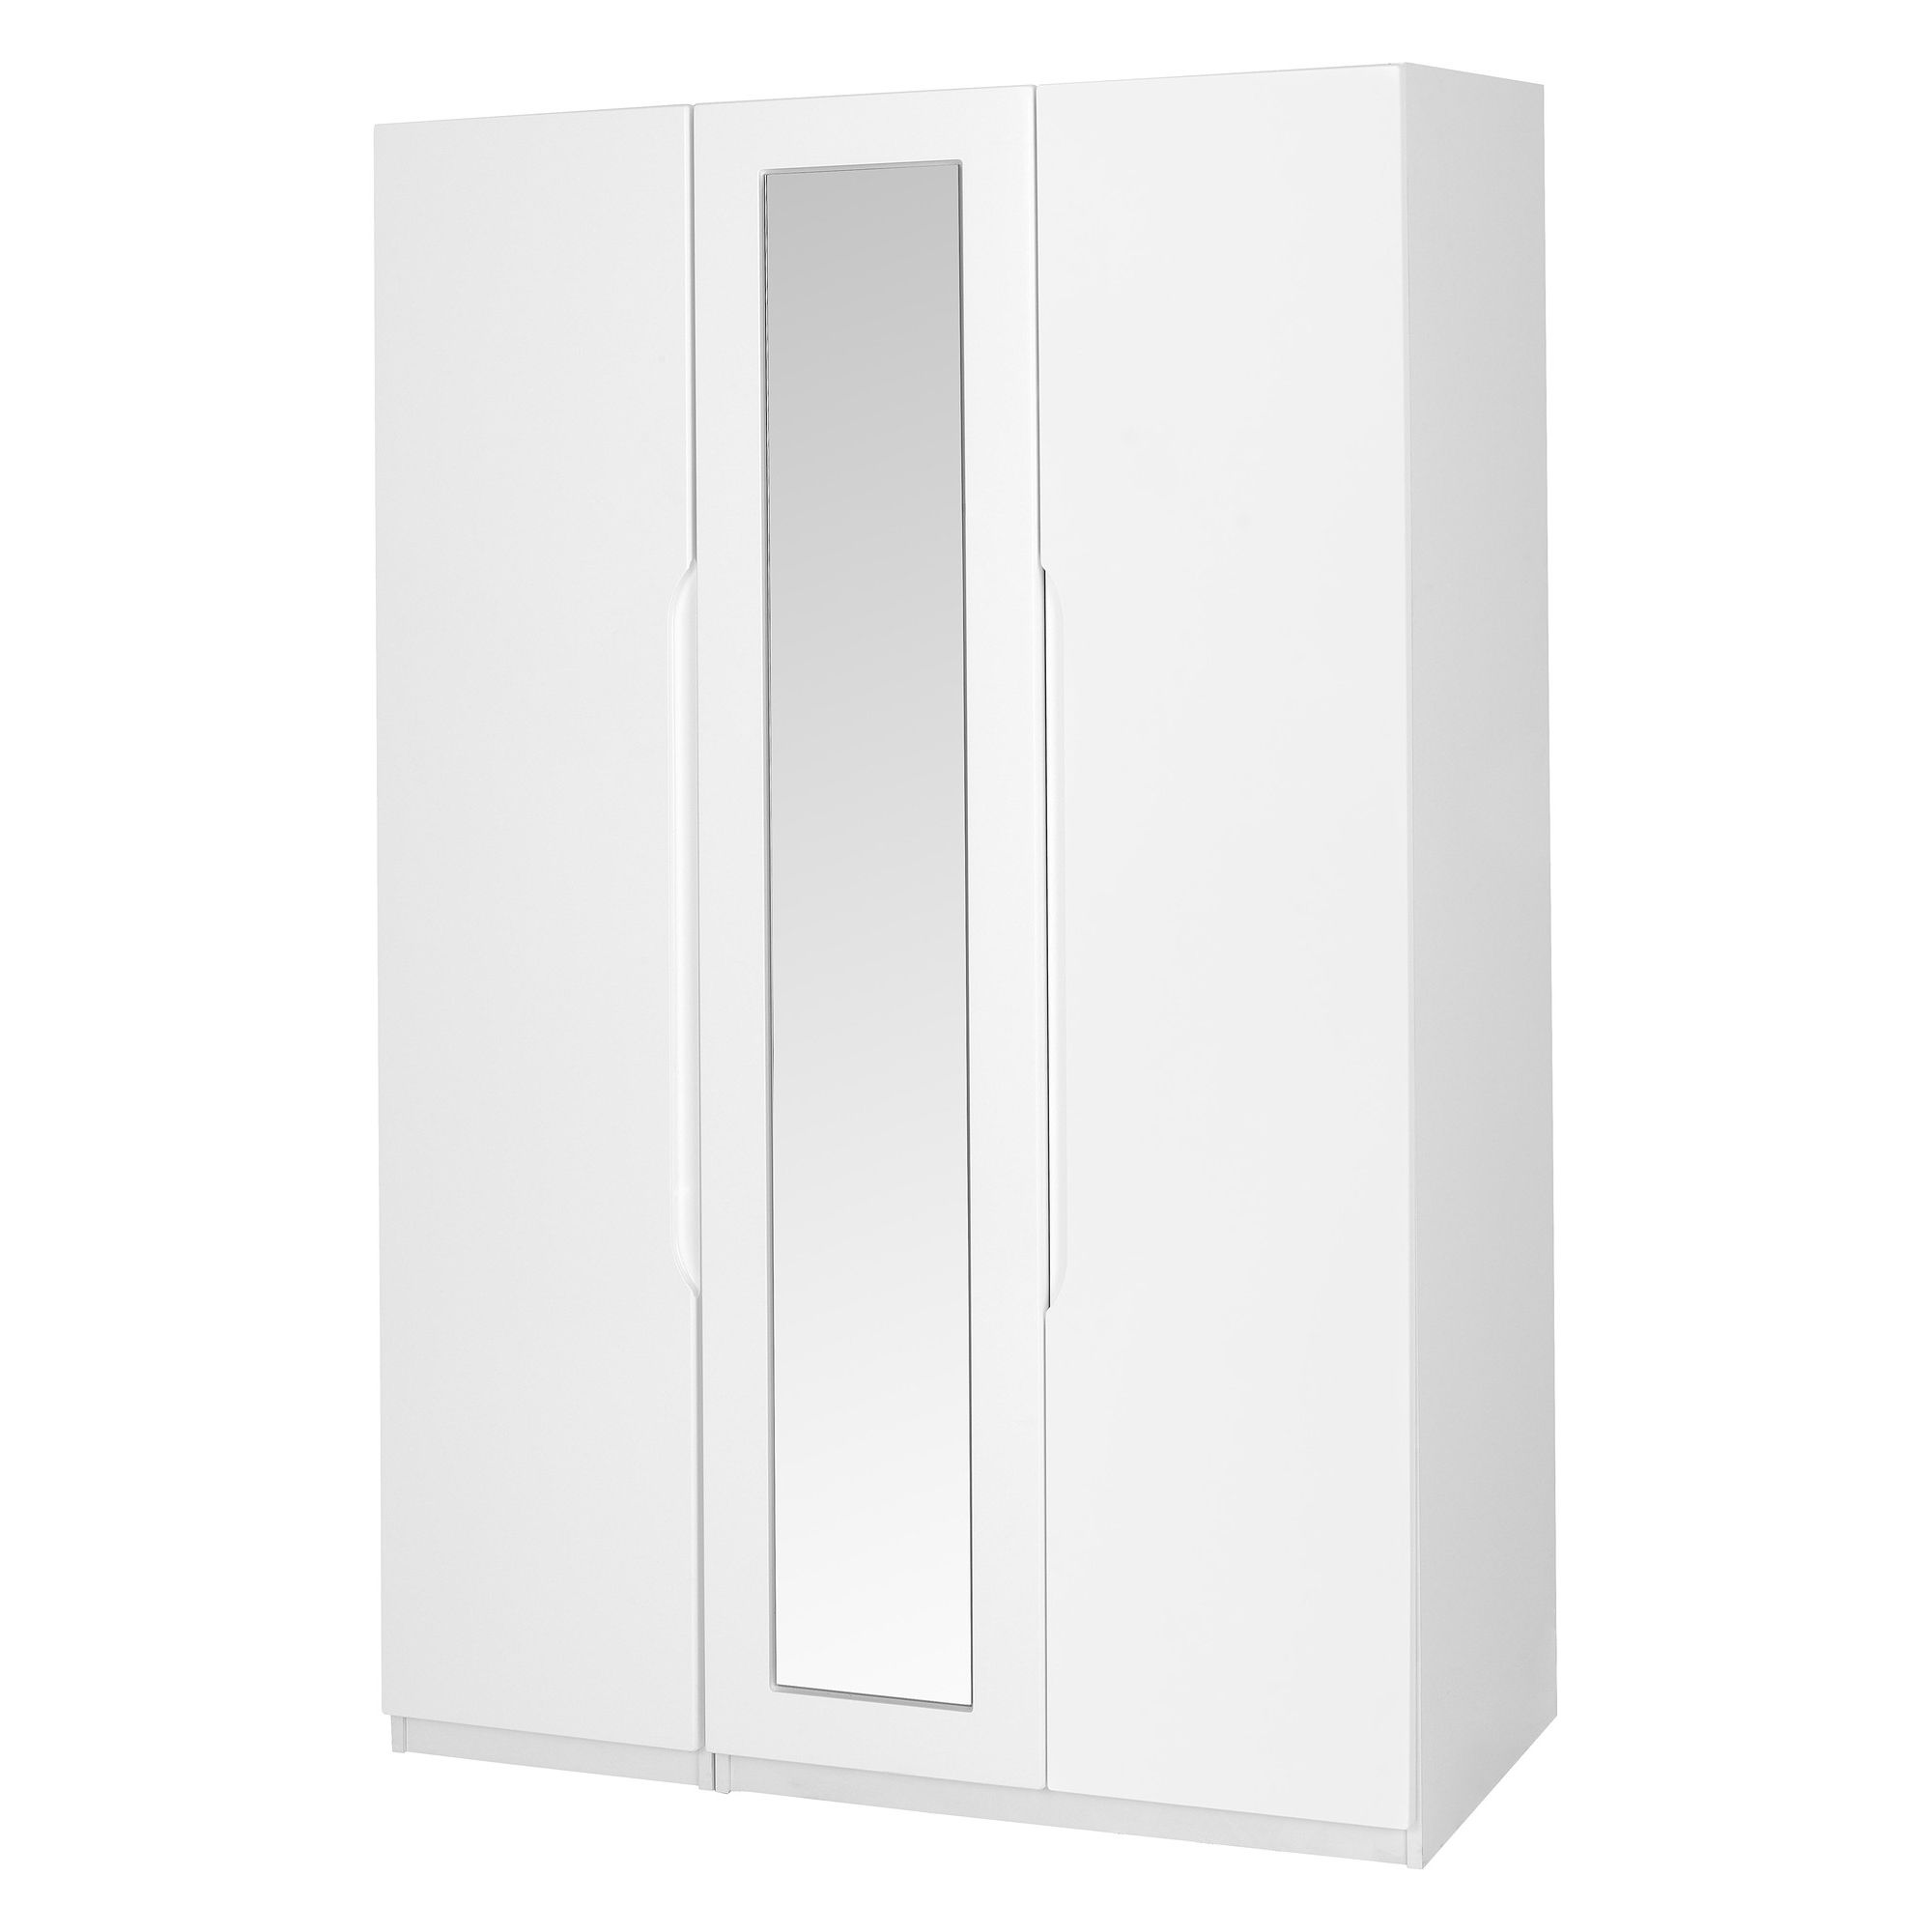 Alto Furniture Visualise Alpine Three Door Wardrobe in High Gloss White at Tesco Direct